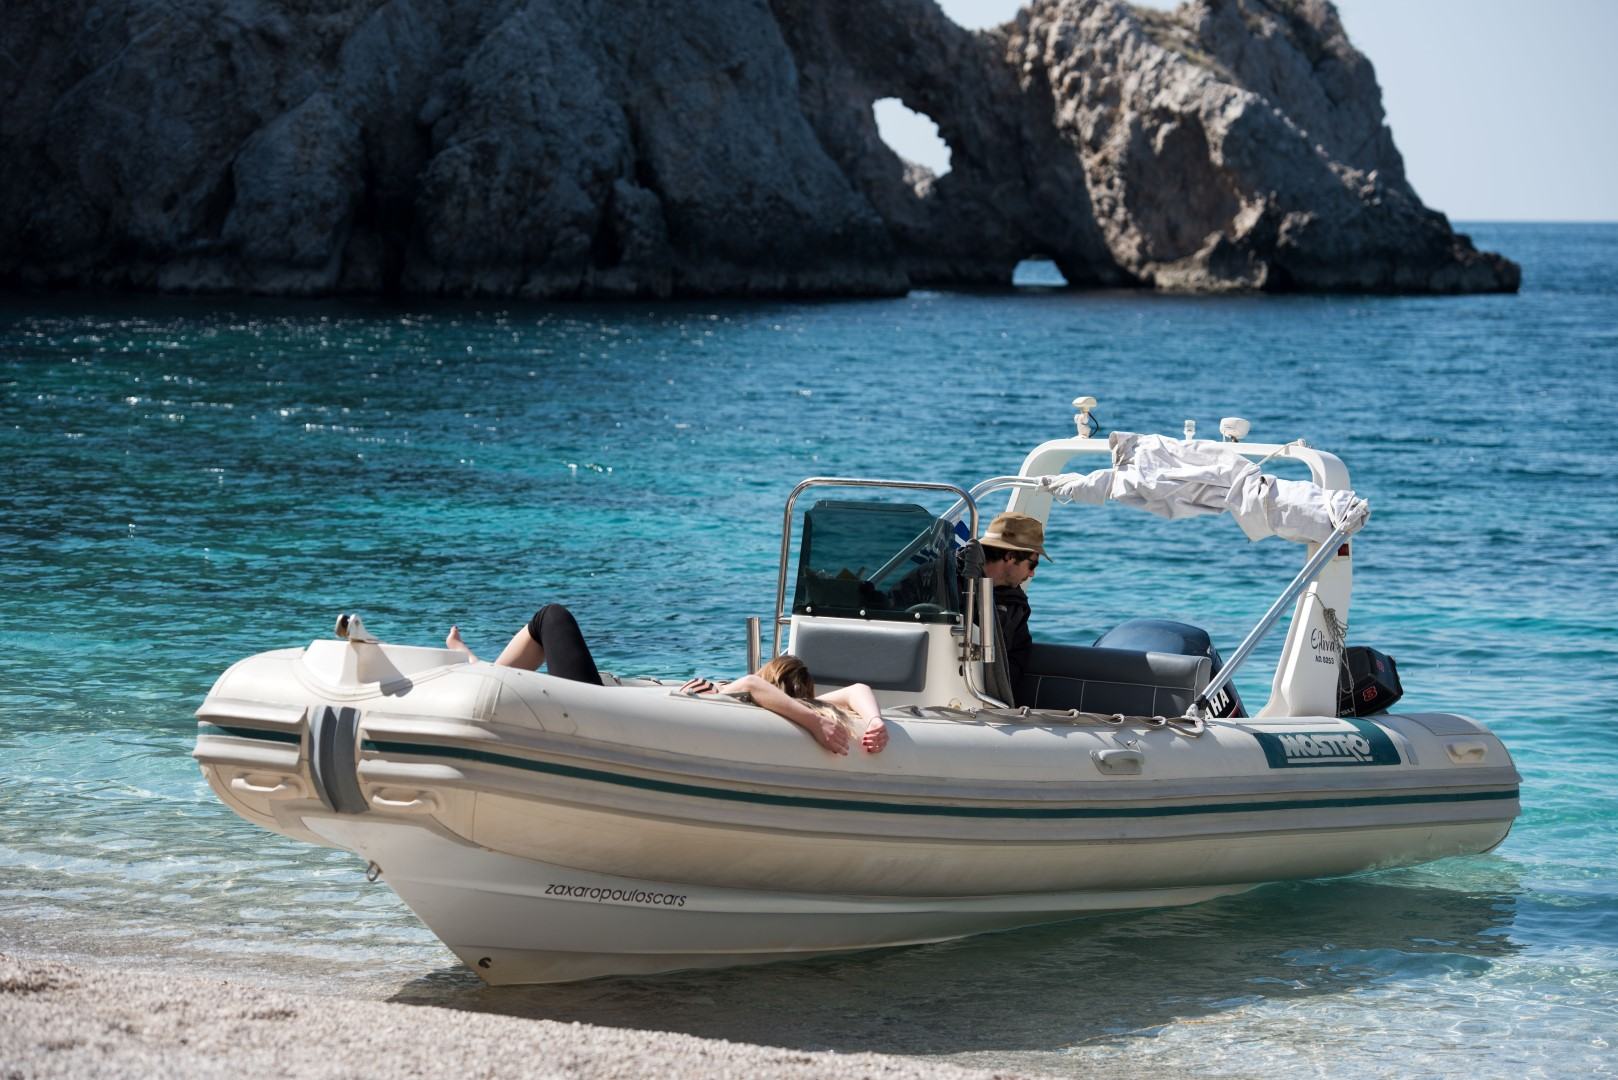 Couple relaxing during a boat trip arranged by Lido Blue